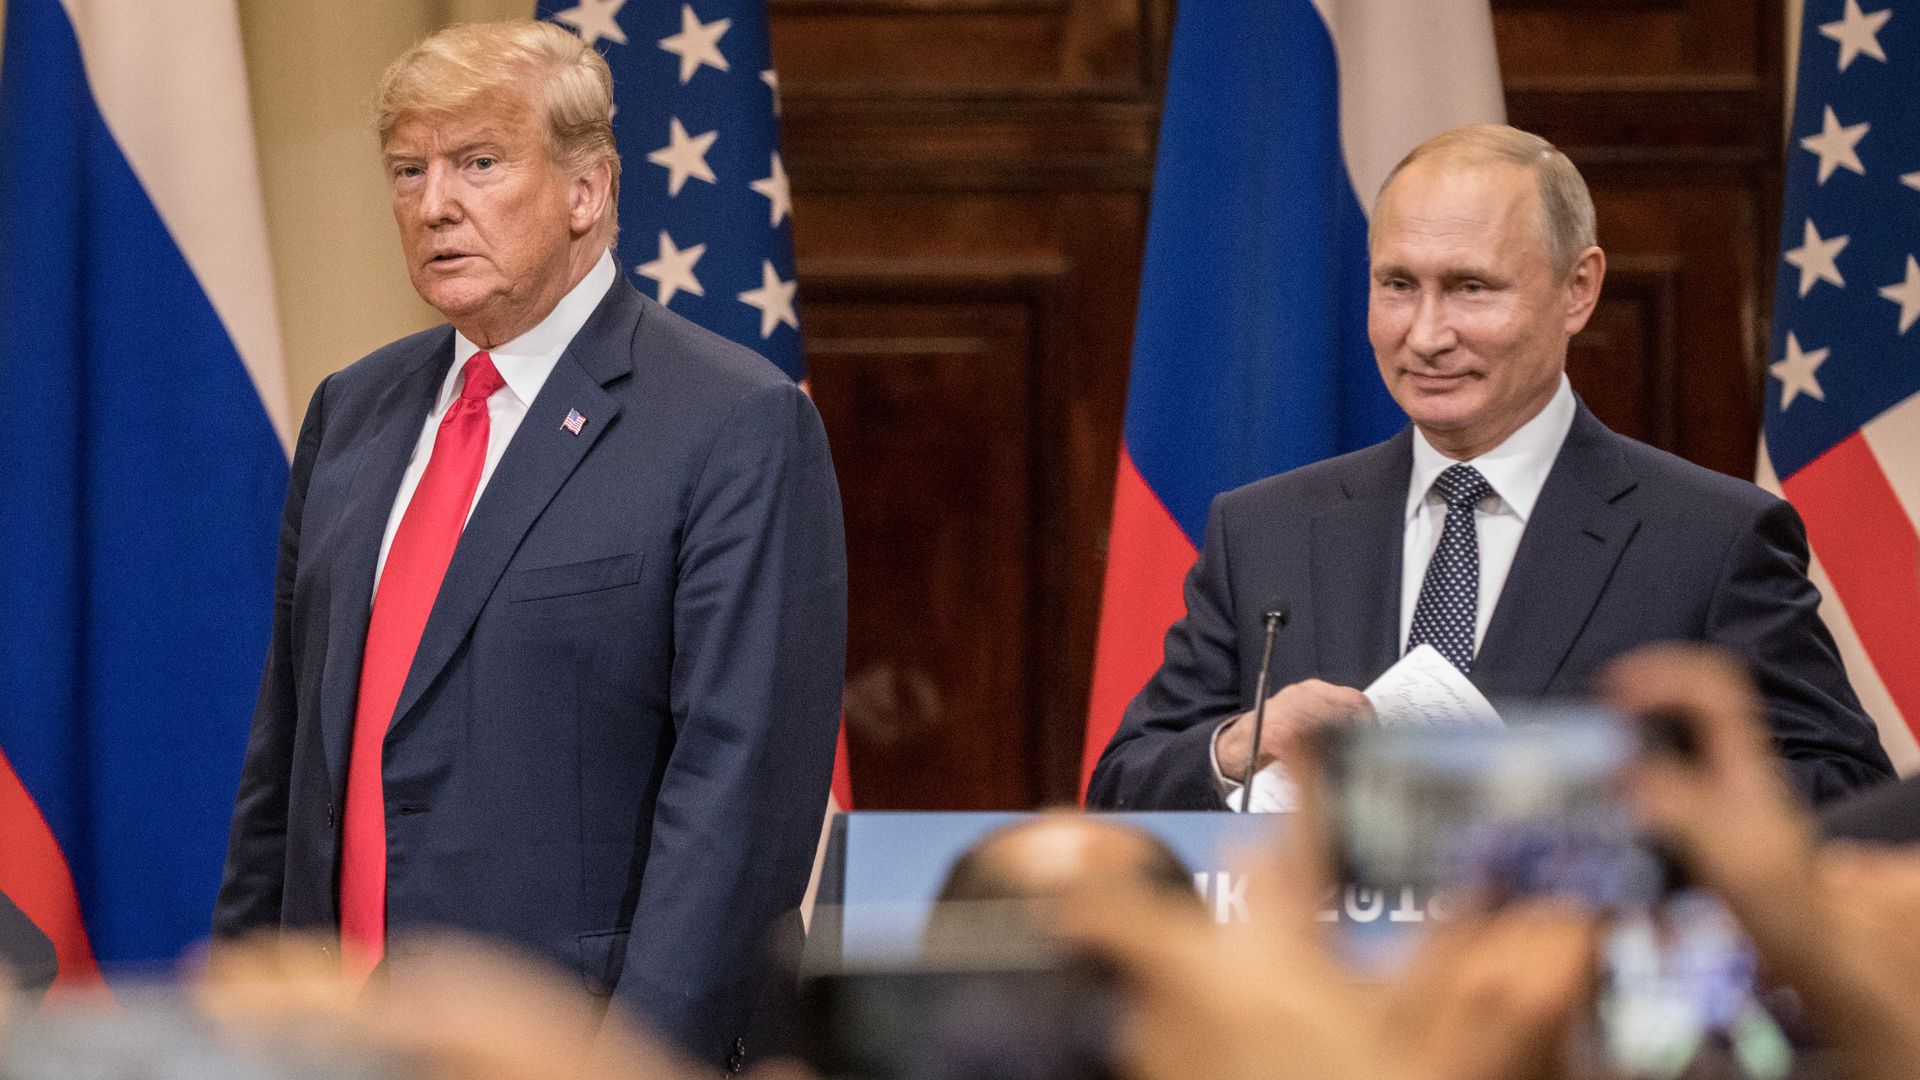 President Trump and Russian President Vladimir Putin during a joint press conference after their summit on July 16, 2018, in Helsinki, Finland.